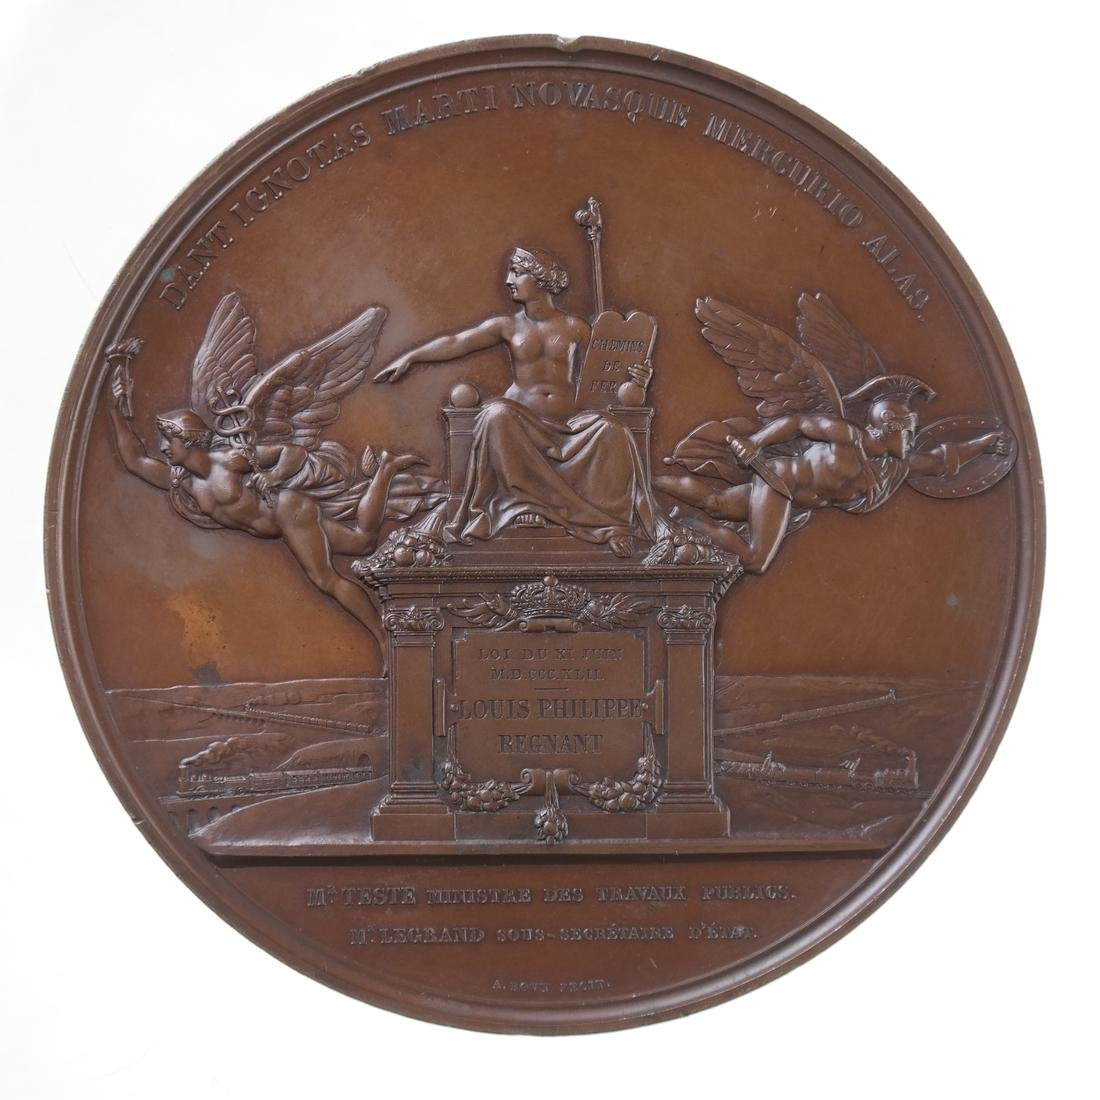 FRANCE. GRAND RAILWAY LINES OF FRANCE MEDALLION, 1842.